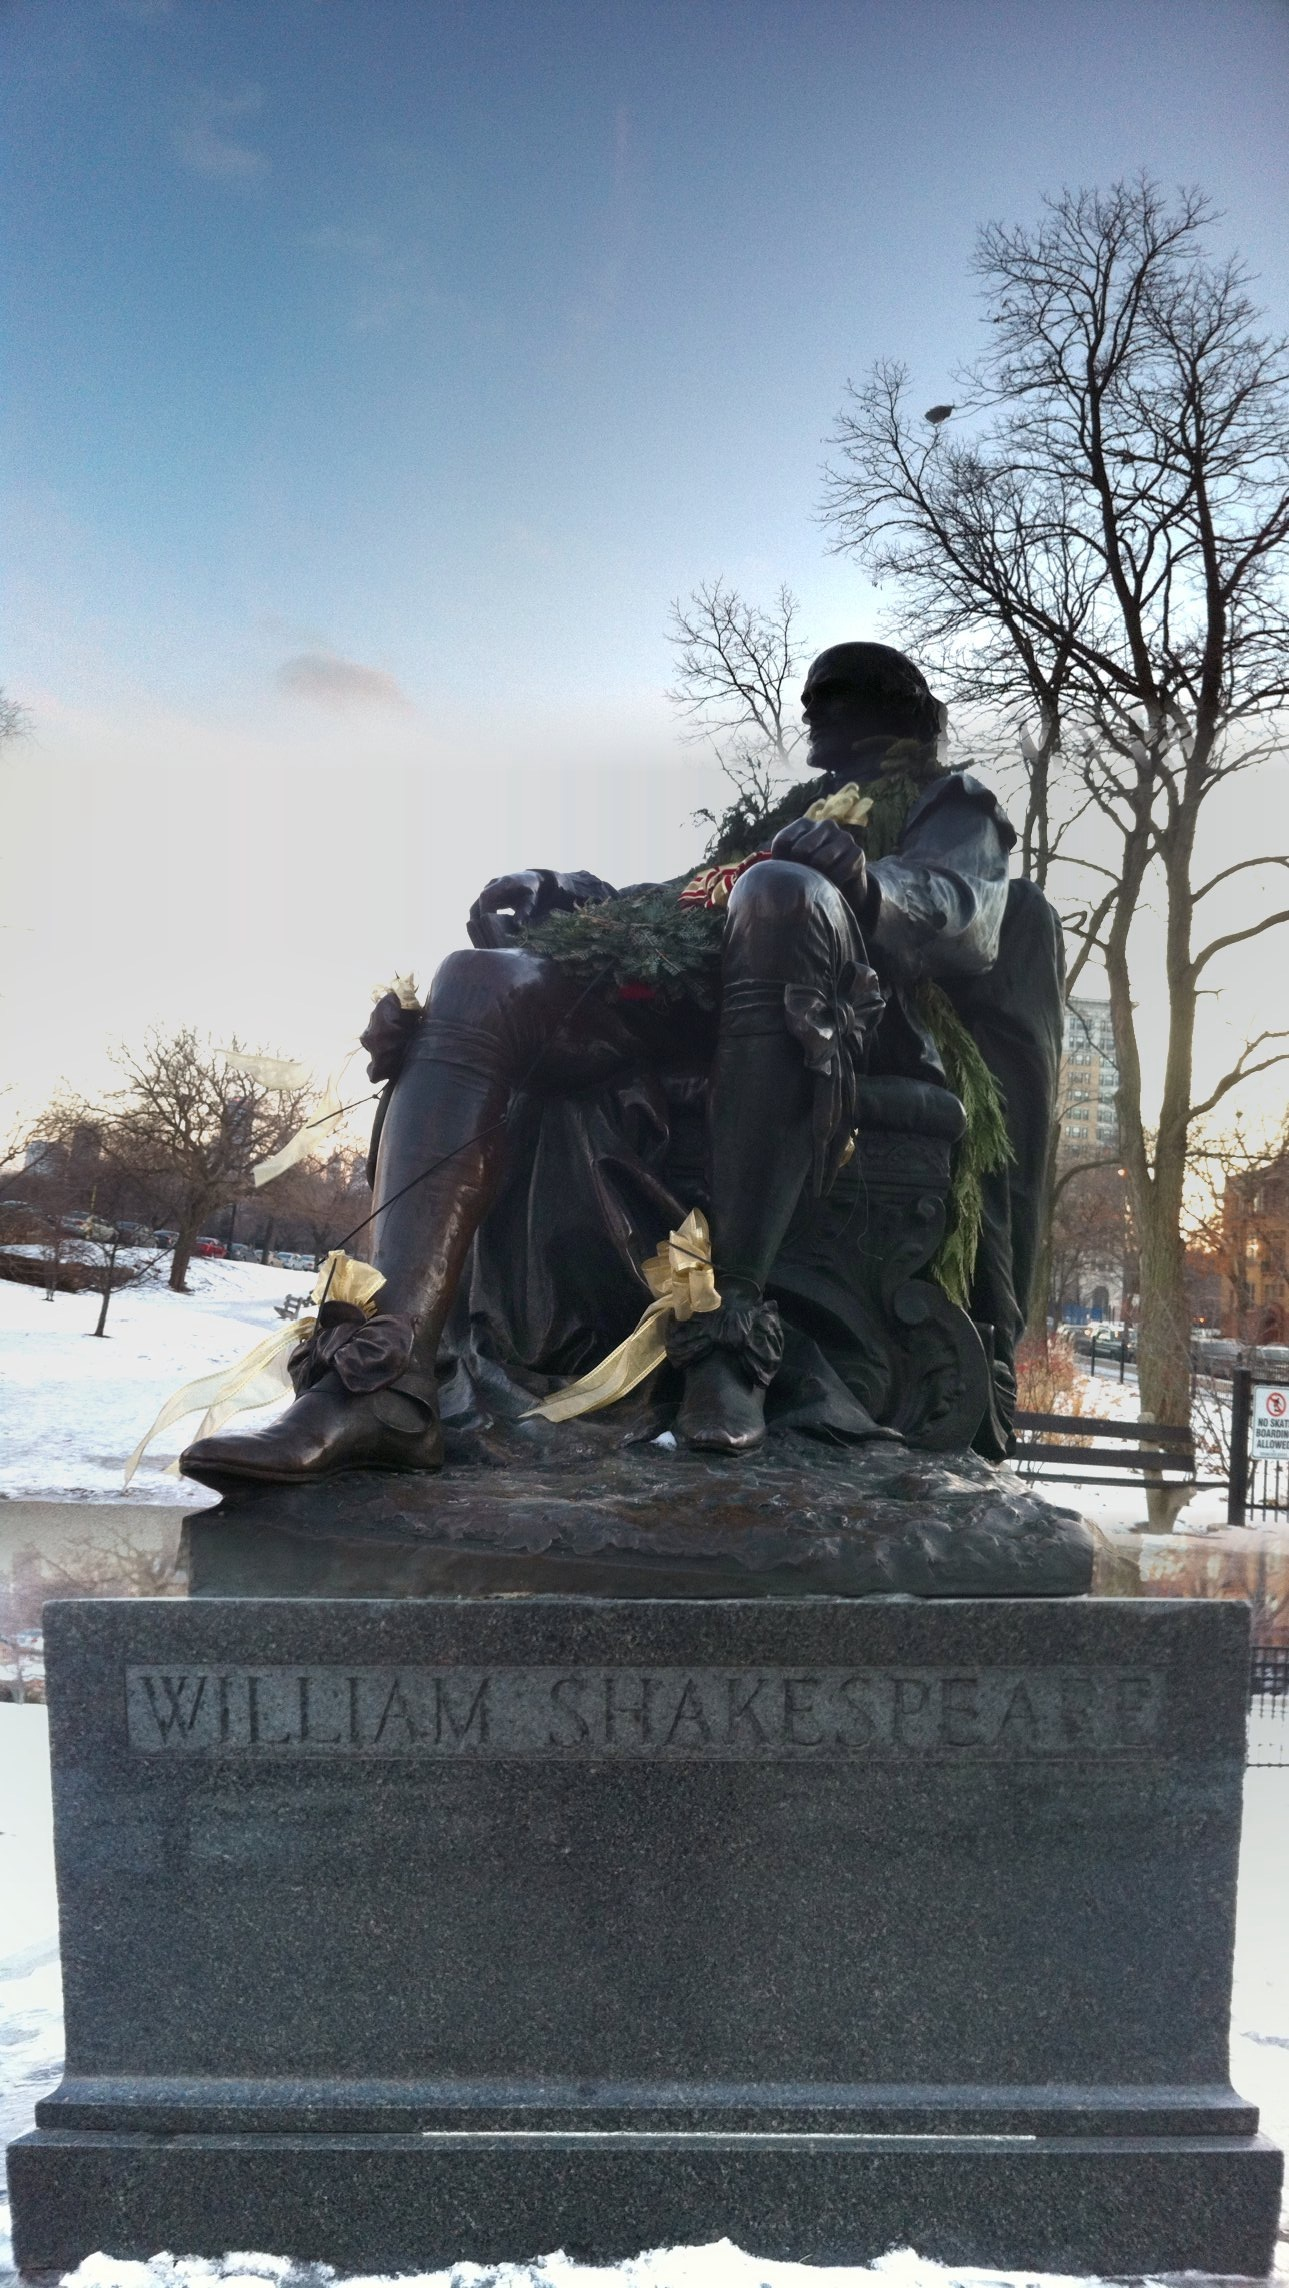 Estatua de William Shakespeare en el parque Lincoln de Chicago.